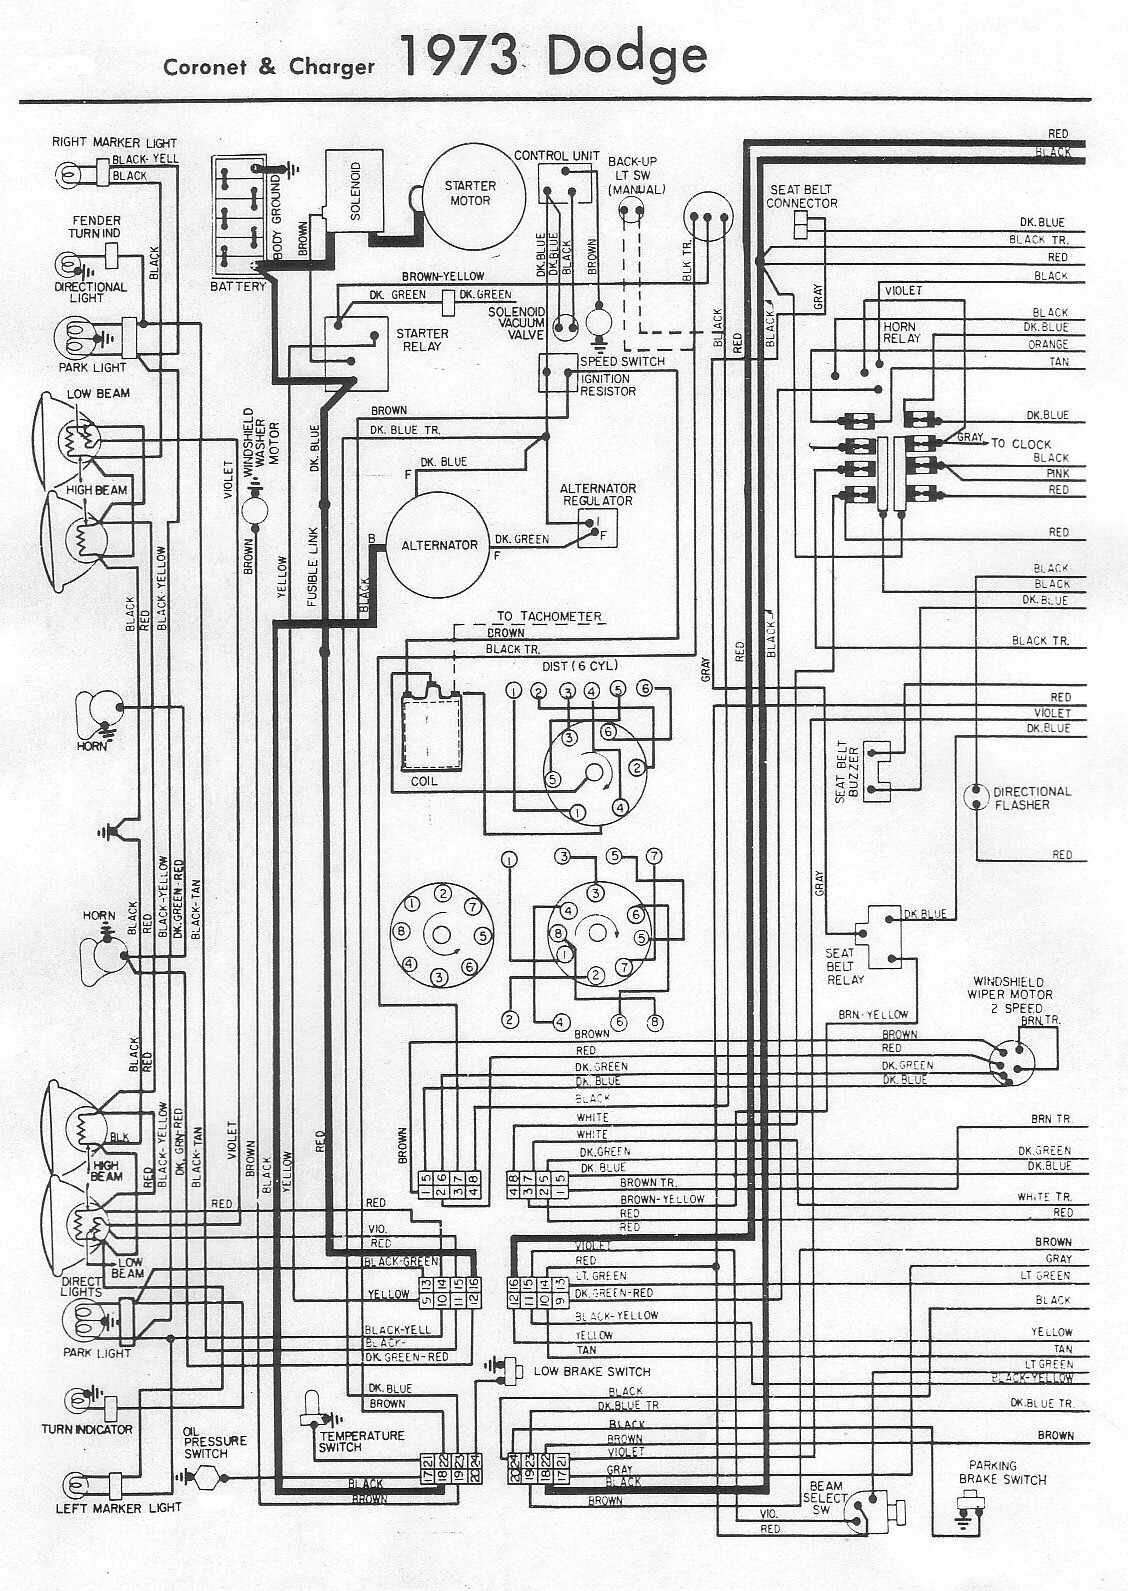 small resolution of 1973 dodge challenger wiring diagram for electronic distributor wiring diagram expert